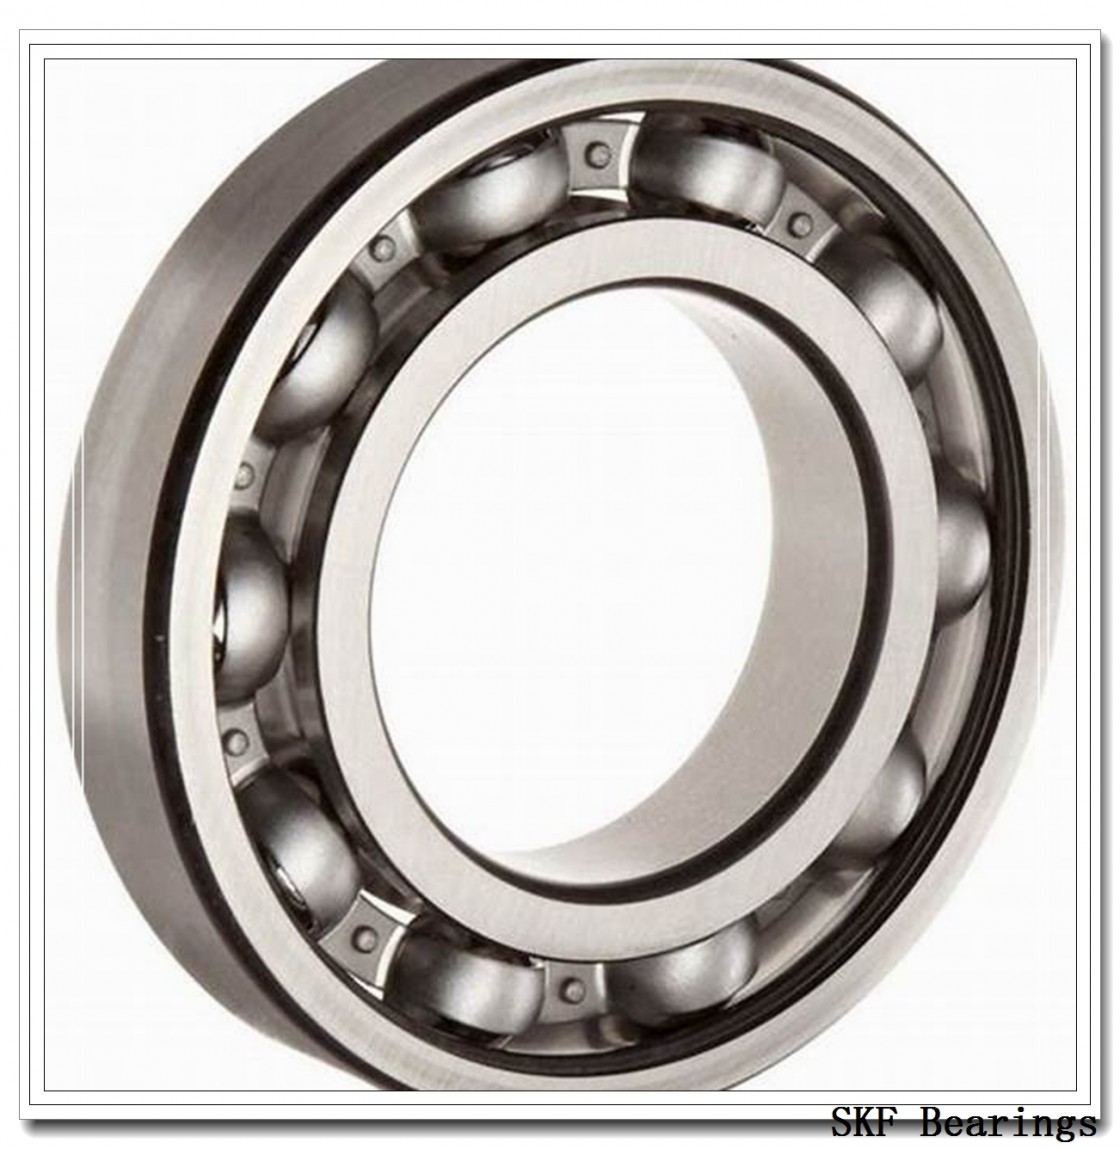 SKF YEL 211-200-2F deep groove ball bearings